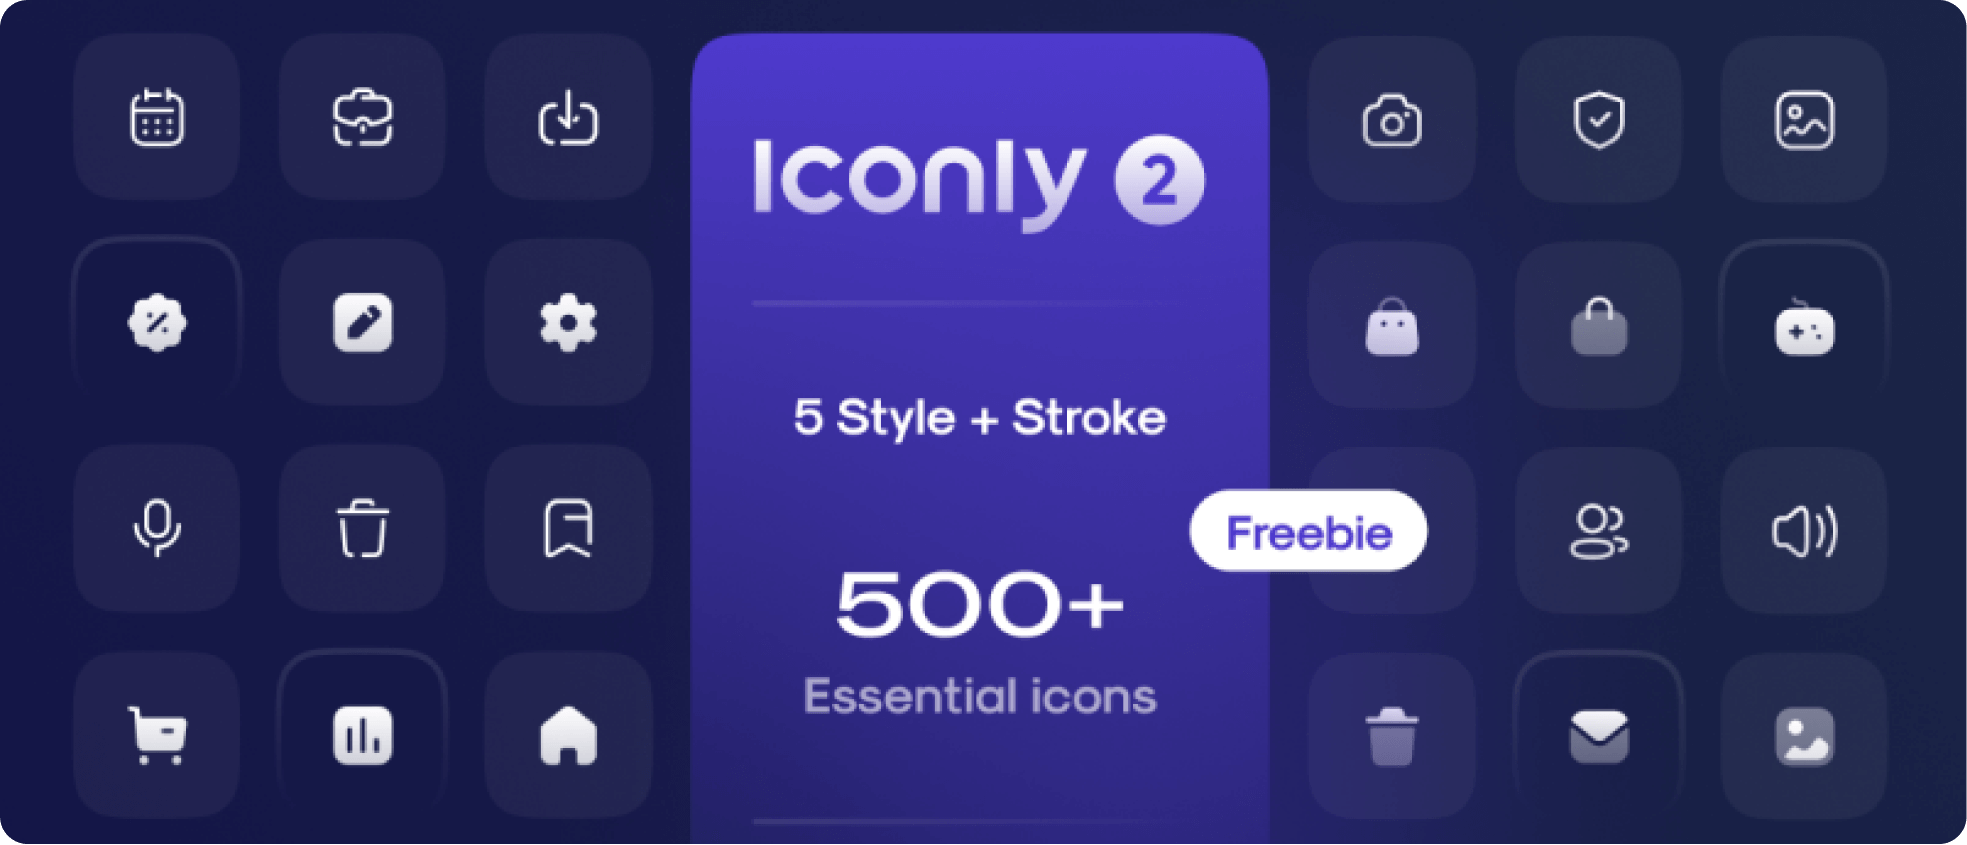 Sample icons for Iconly 2 icon set.